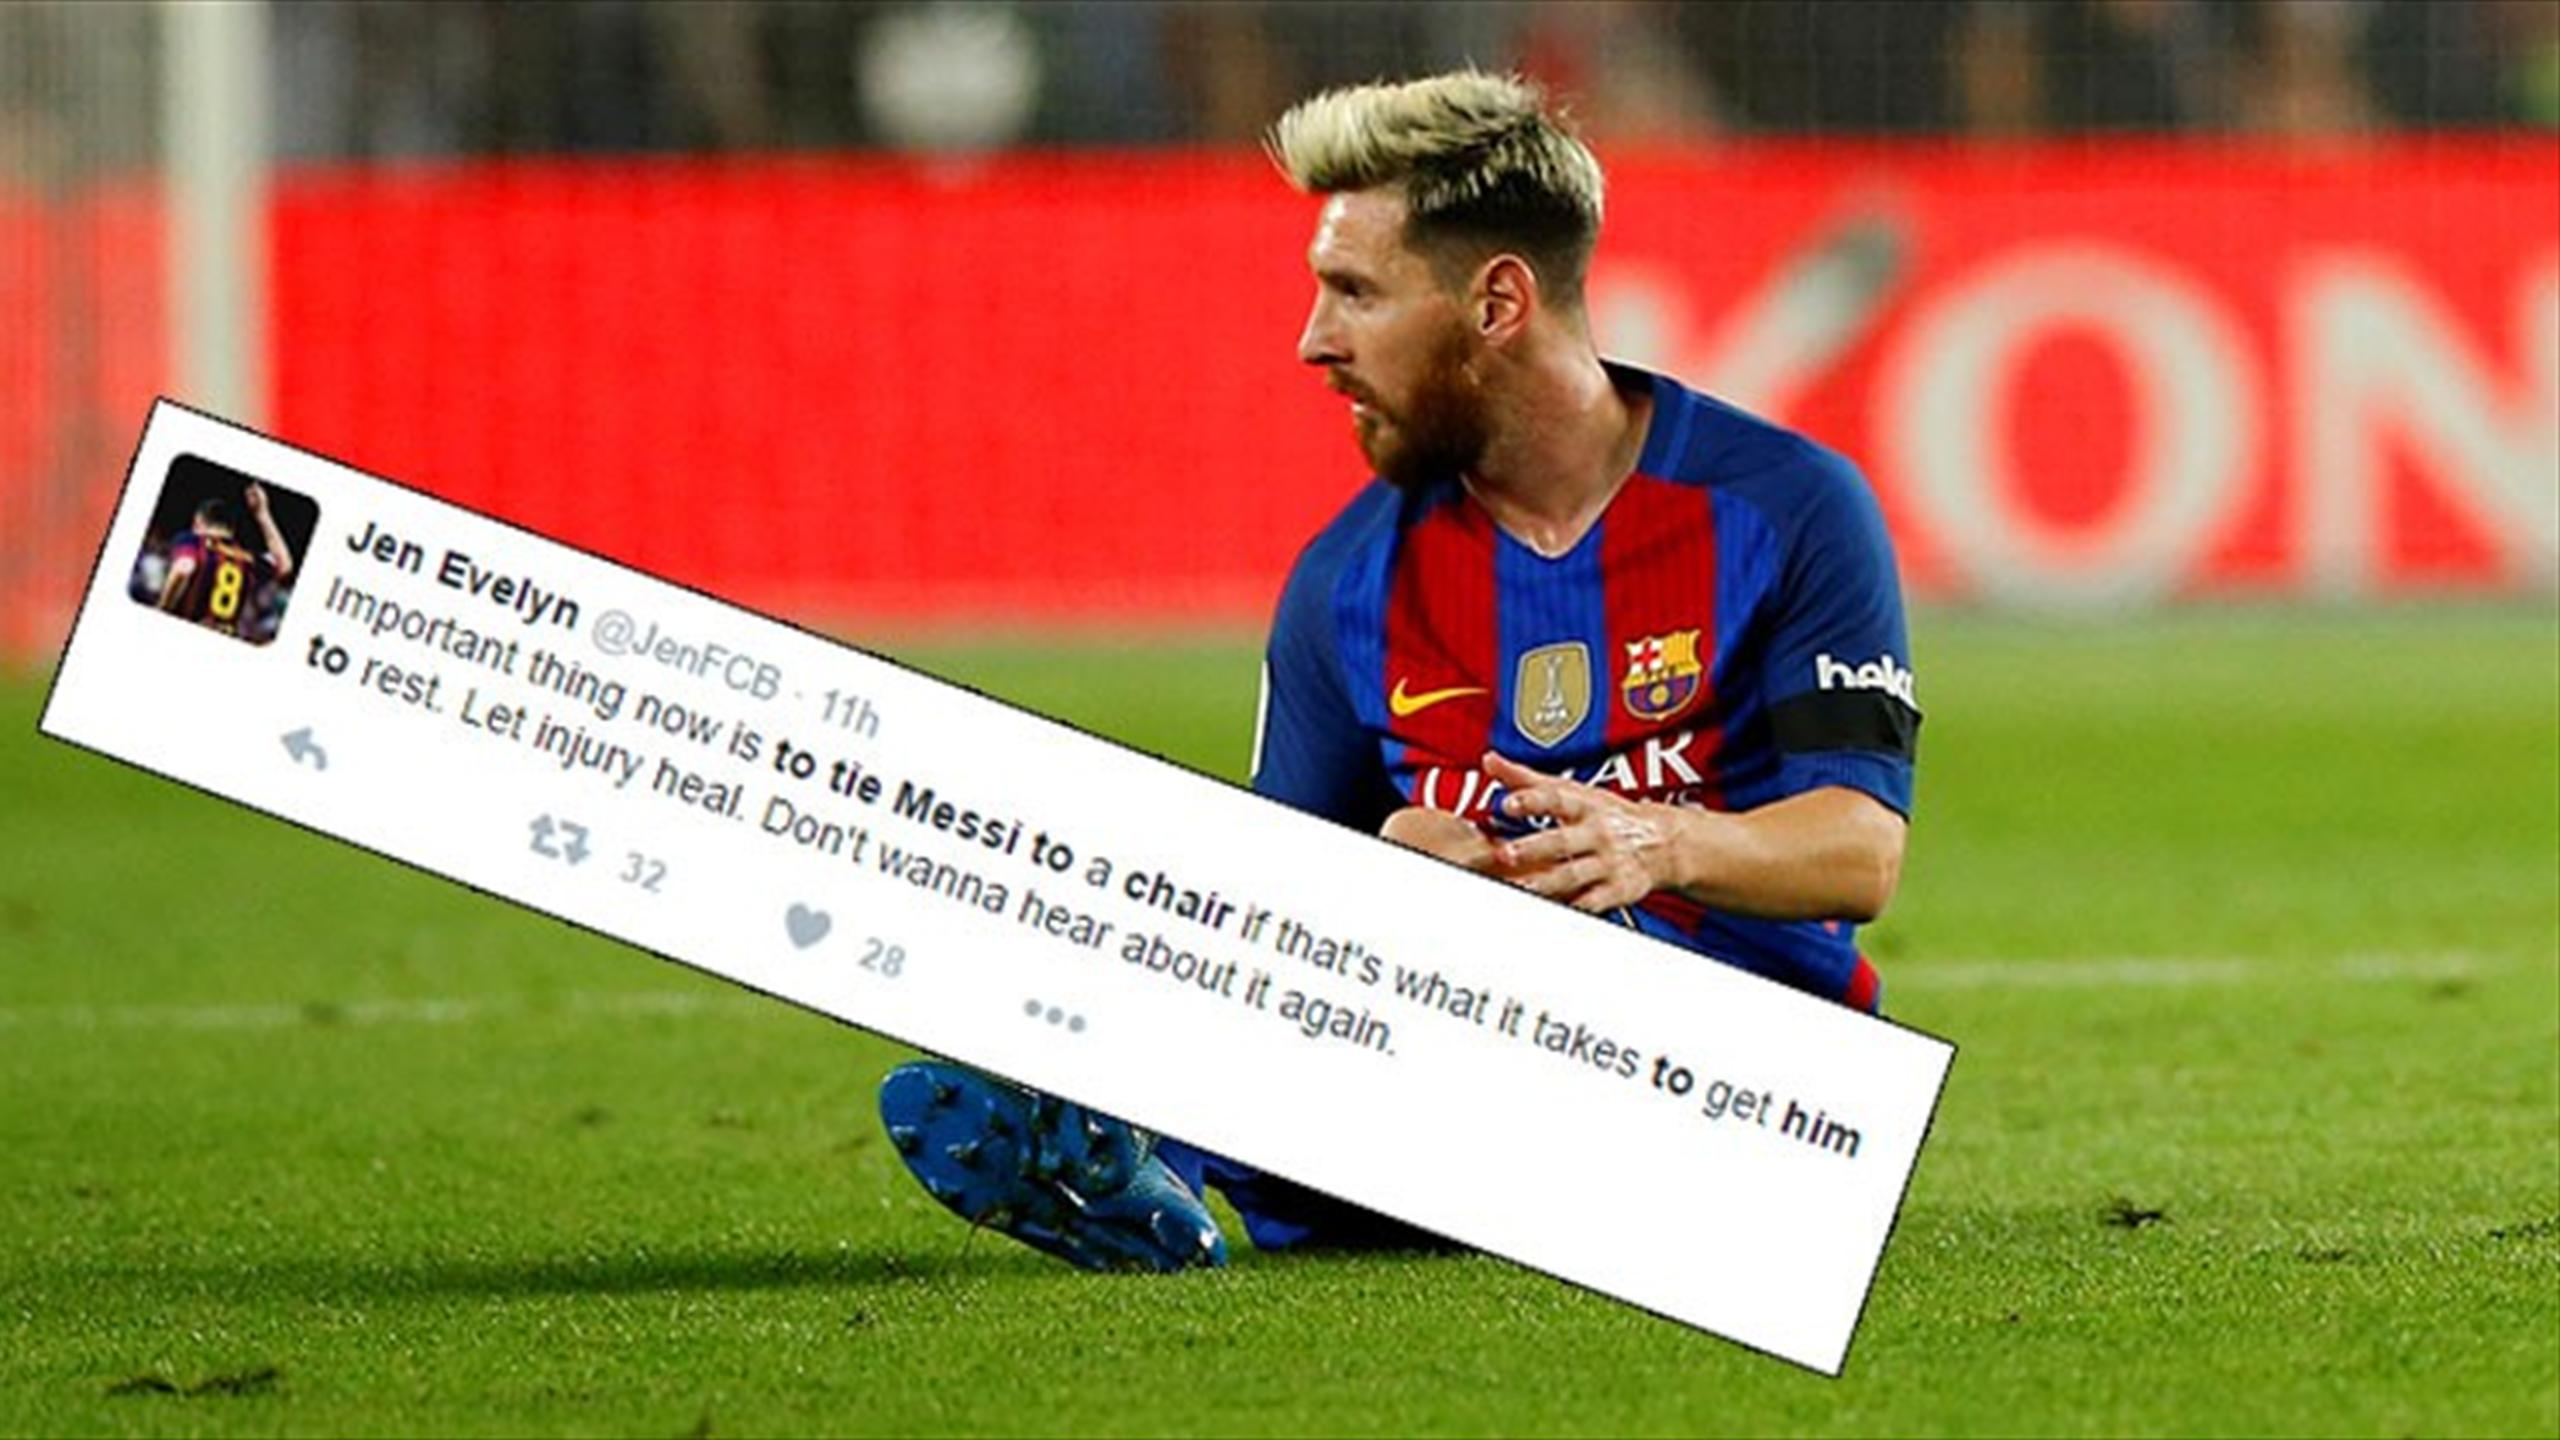 Twitter reaction to Lionel Messi suffering his injury